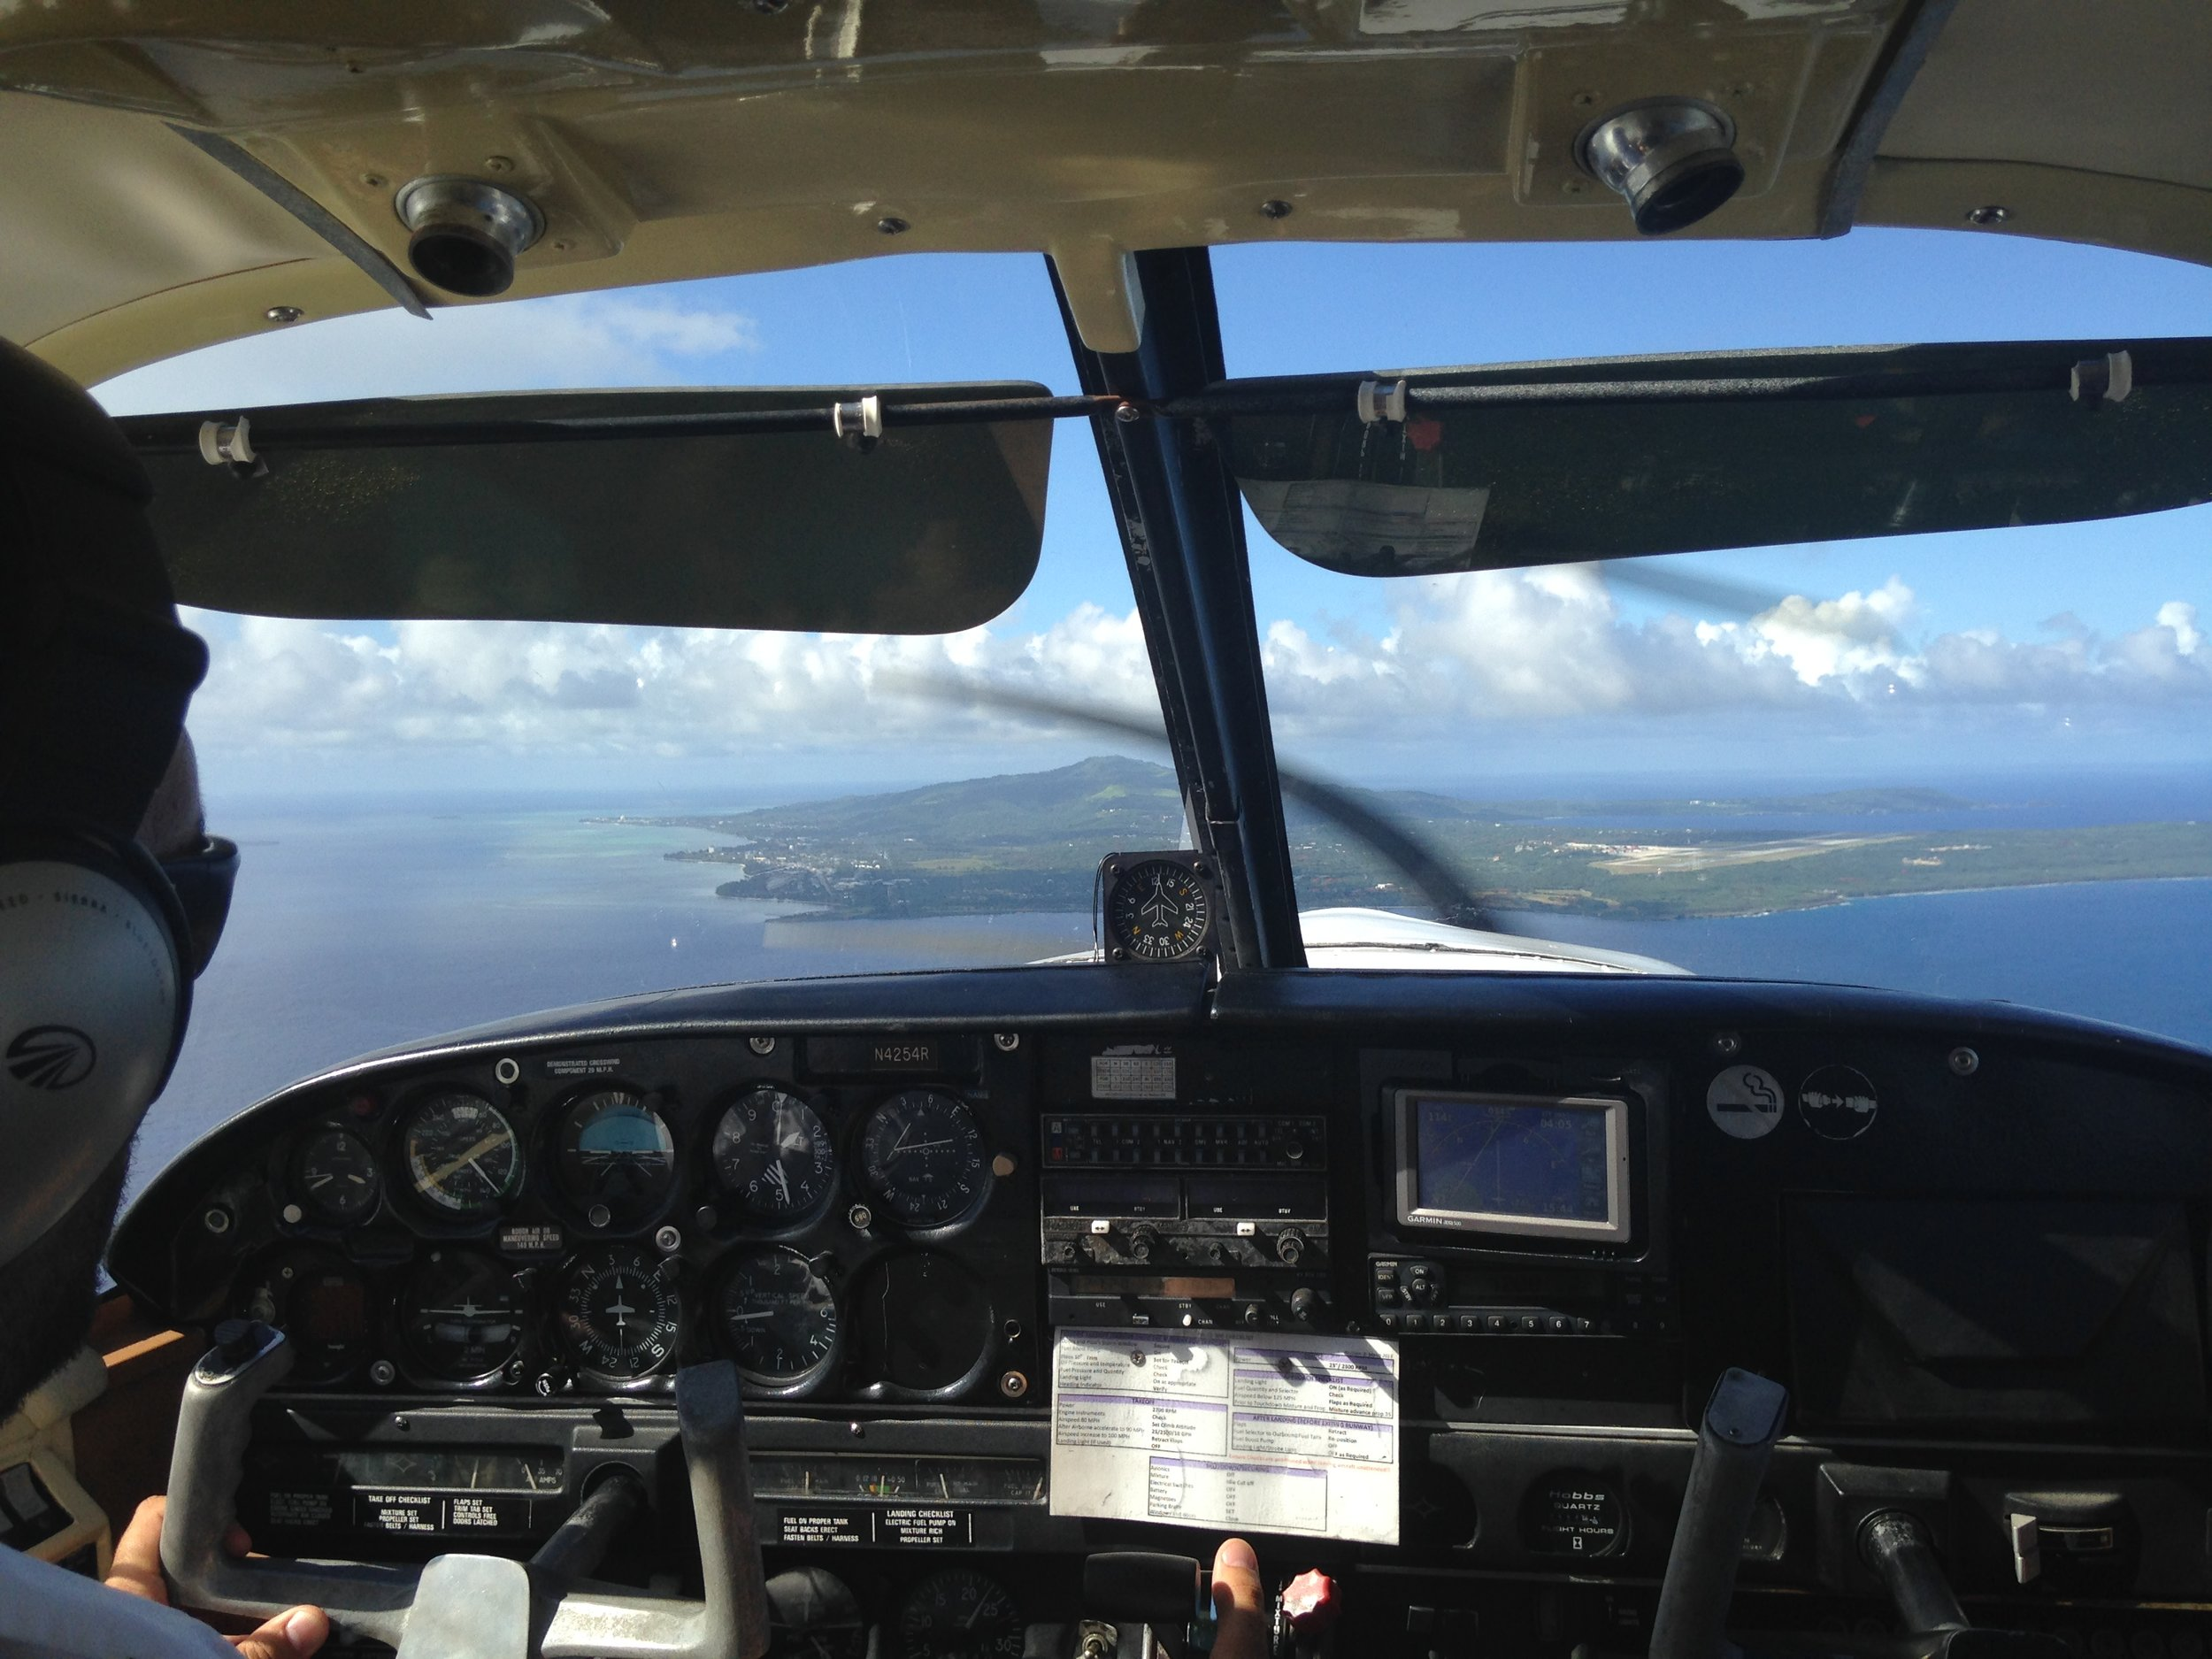 puddle jumper between Saipan and Tinian